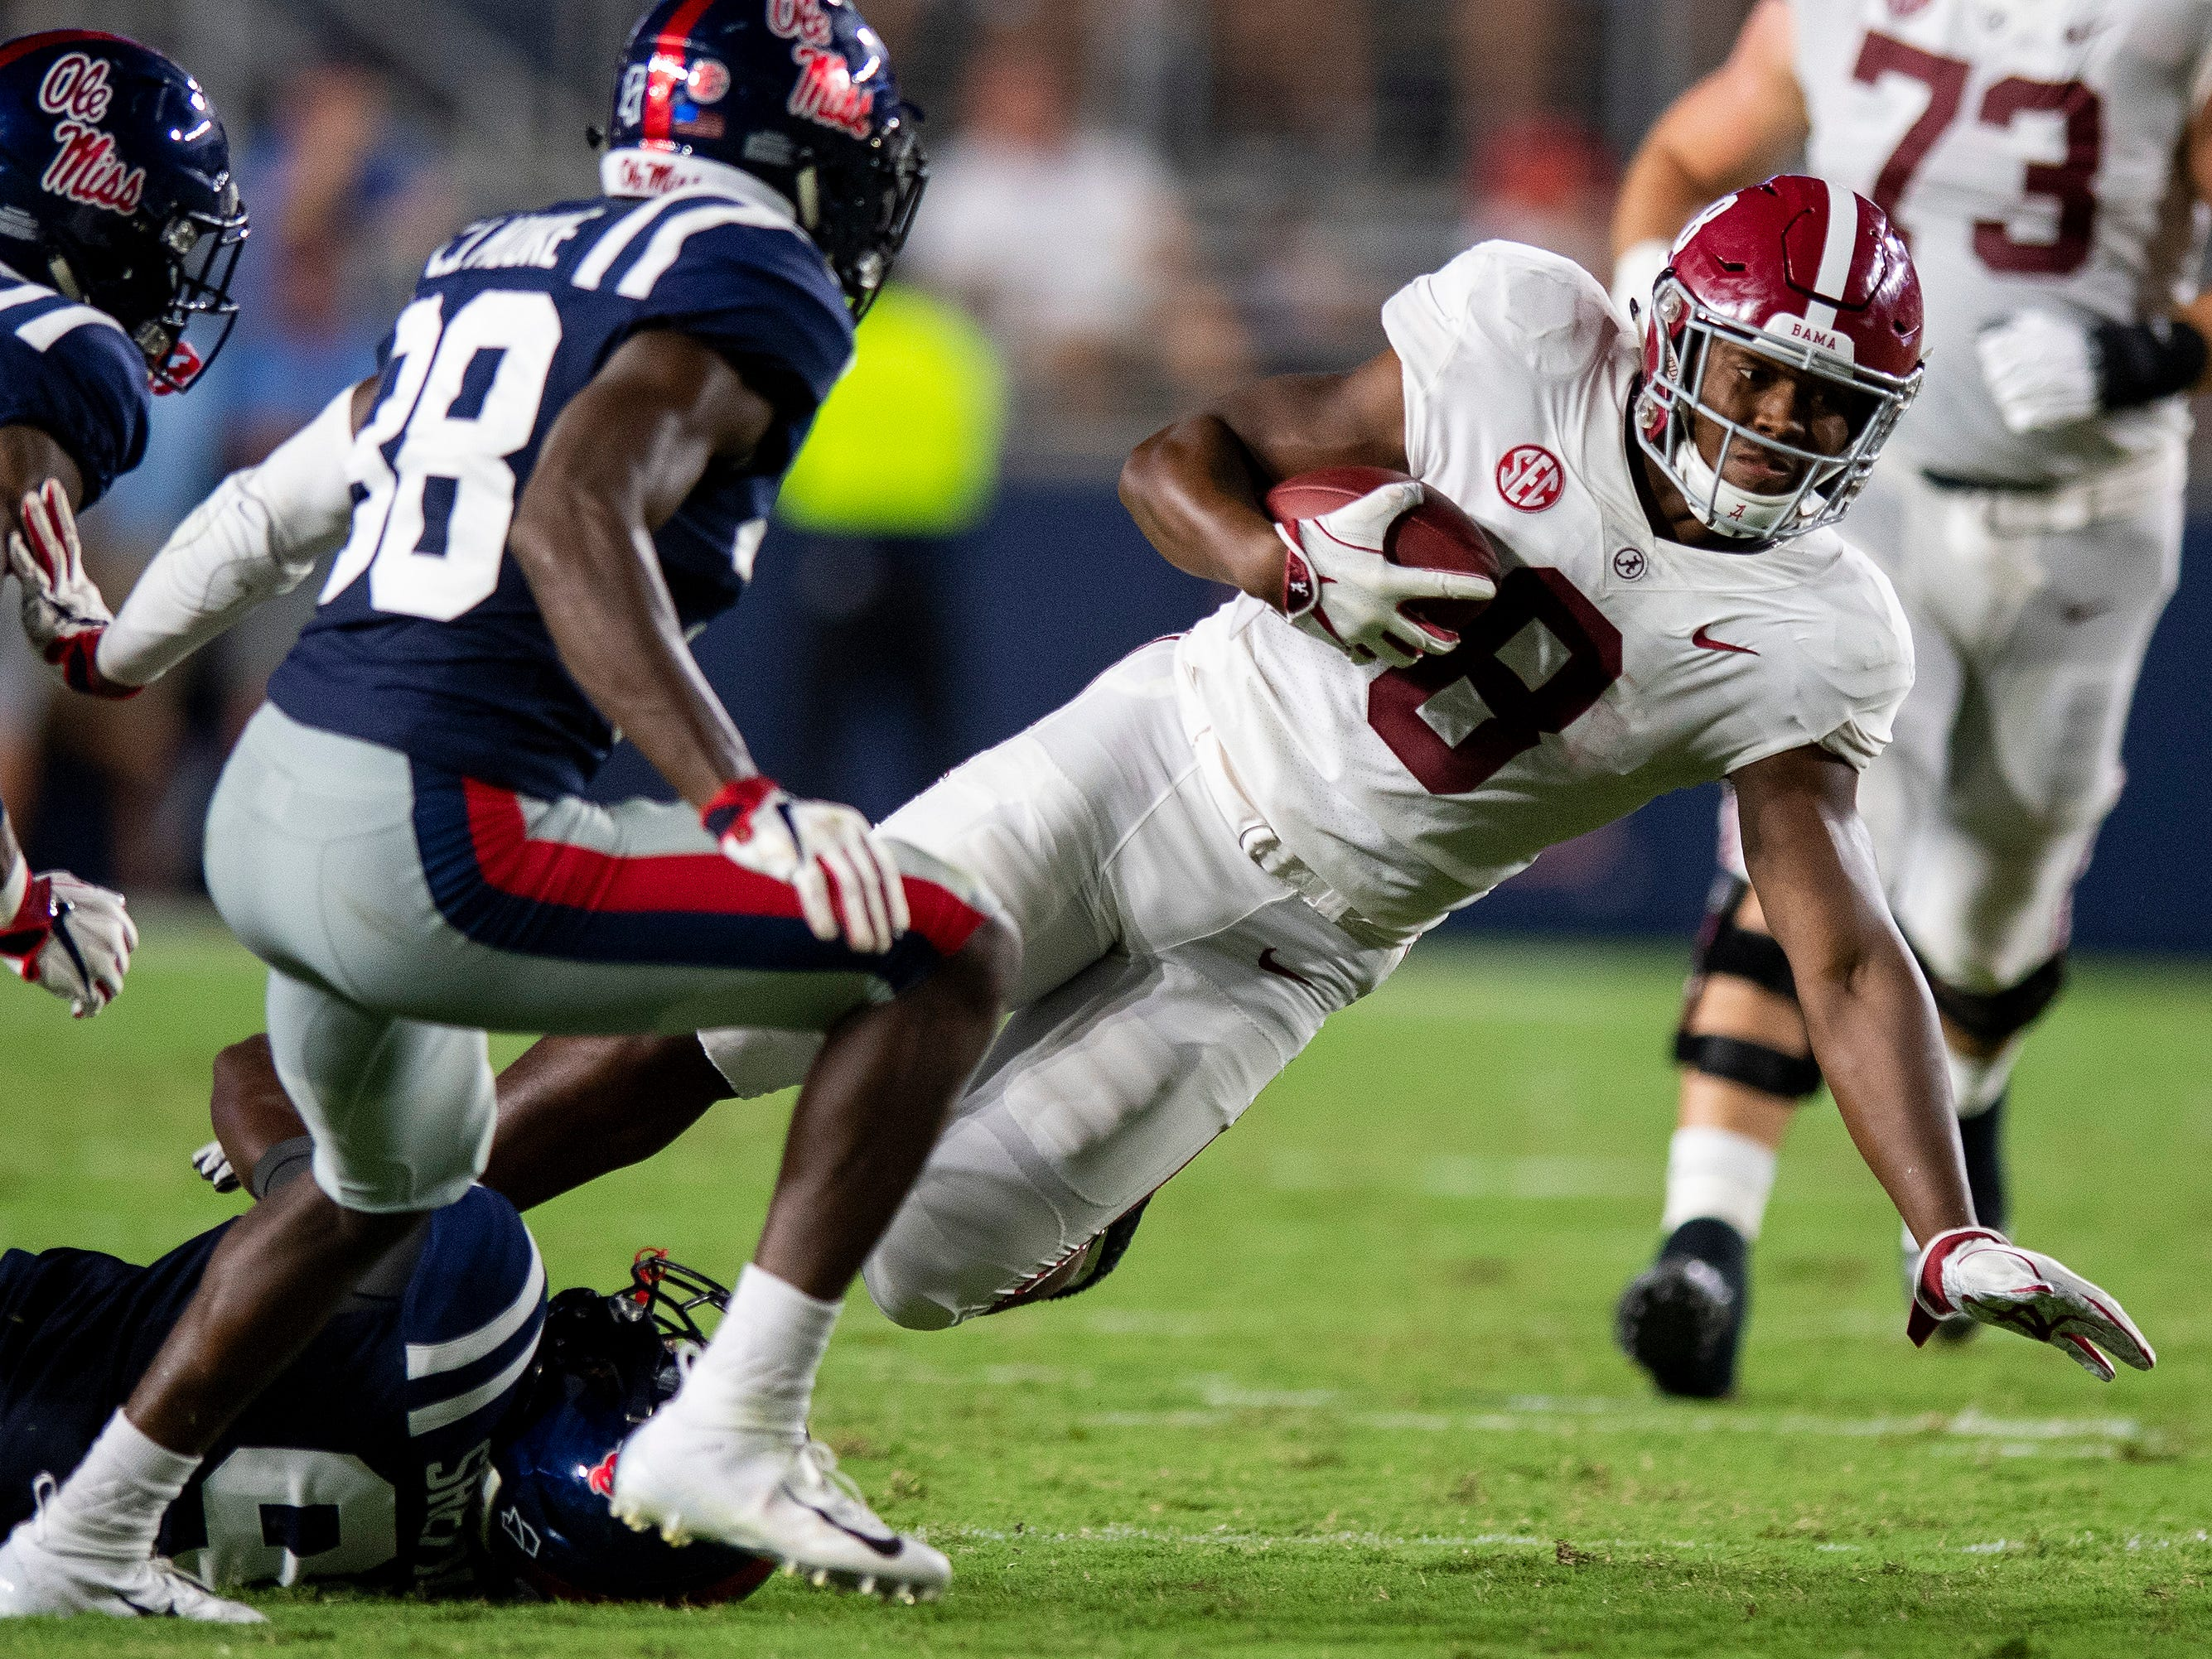 Alabama running back Josh Jacobs (8) carries against Ole Miss In first half action in Oxford, Ms., on Saturday September 15, 2018.